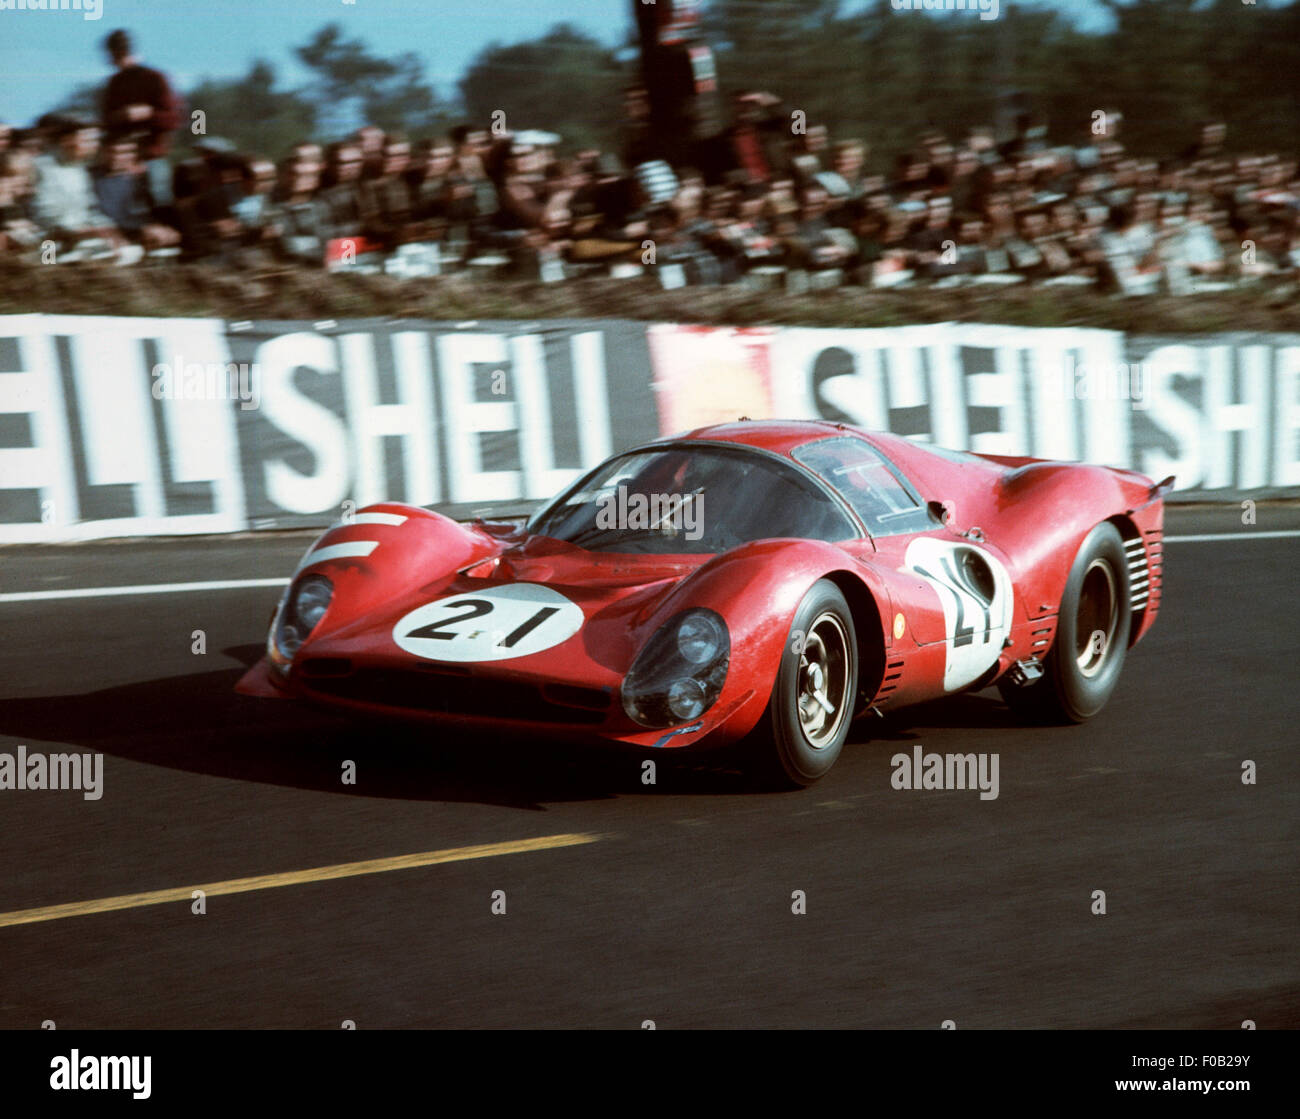 Le Mans 1967 Stock Photo Royalty Free Image 86295159 Alamy